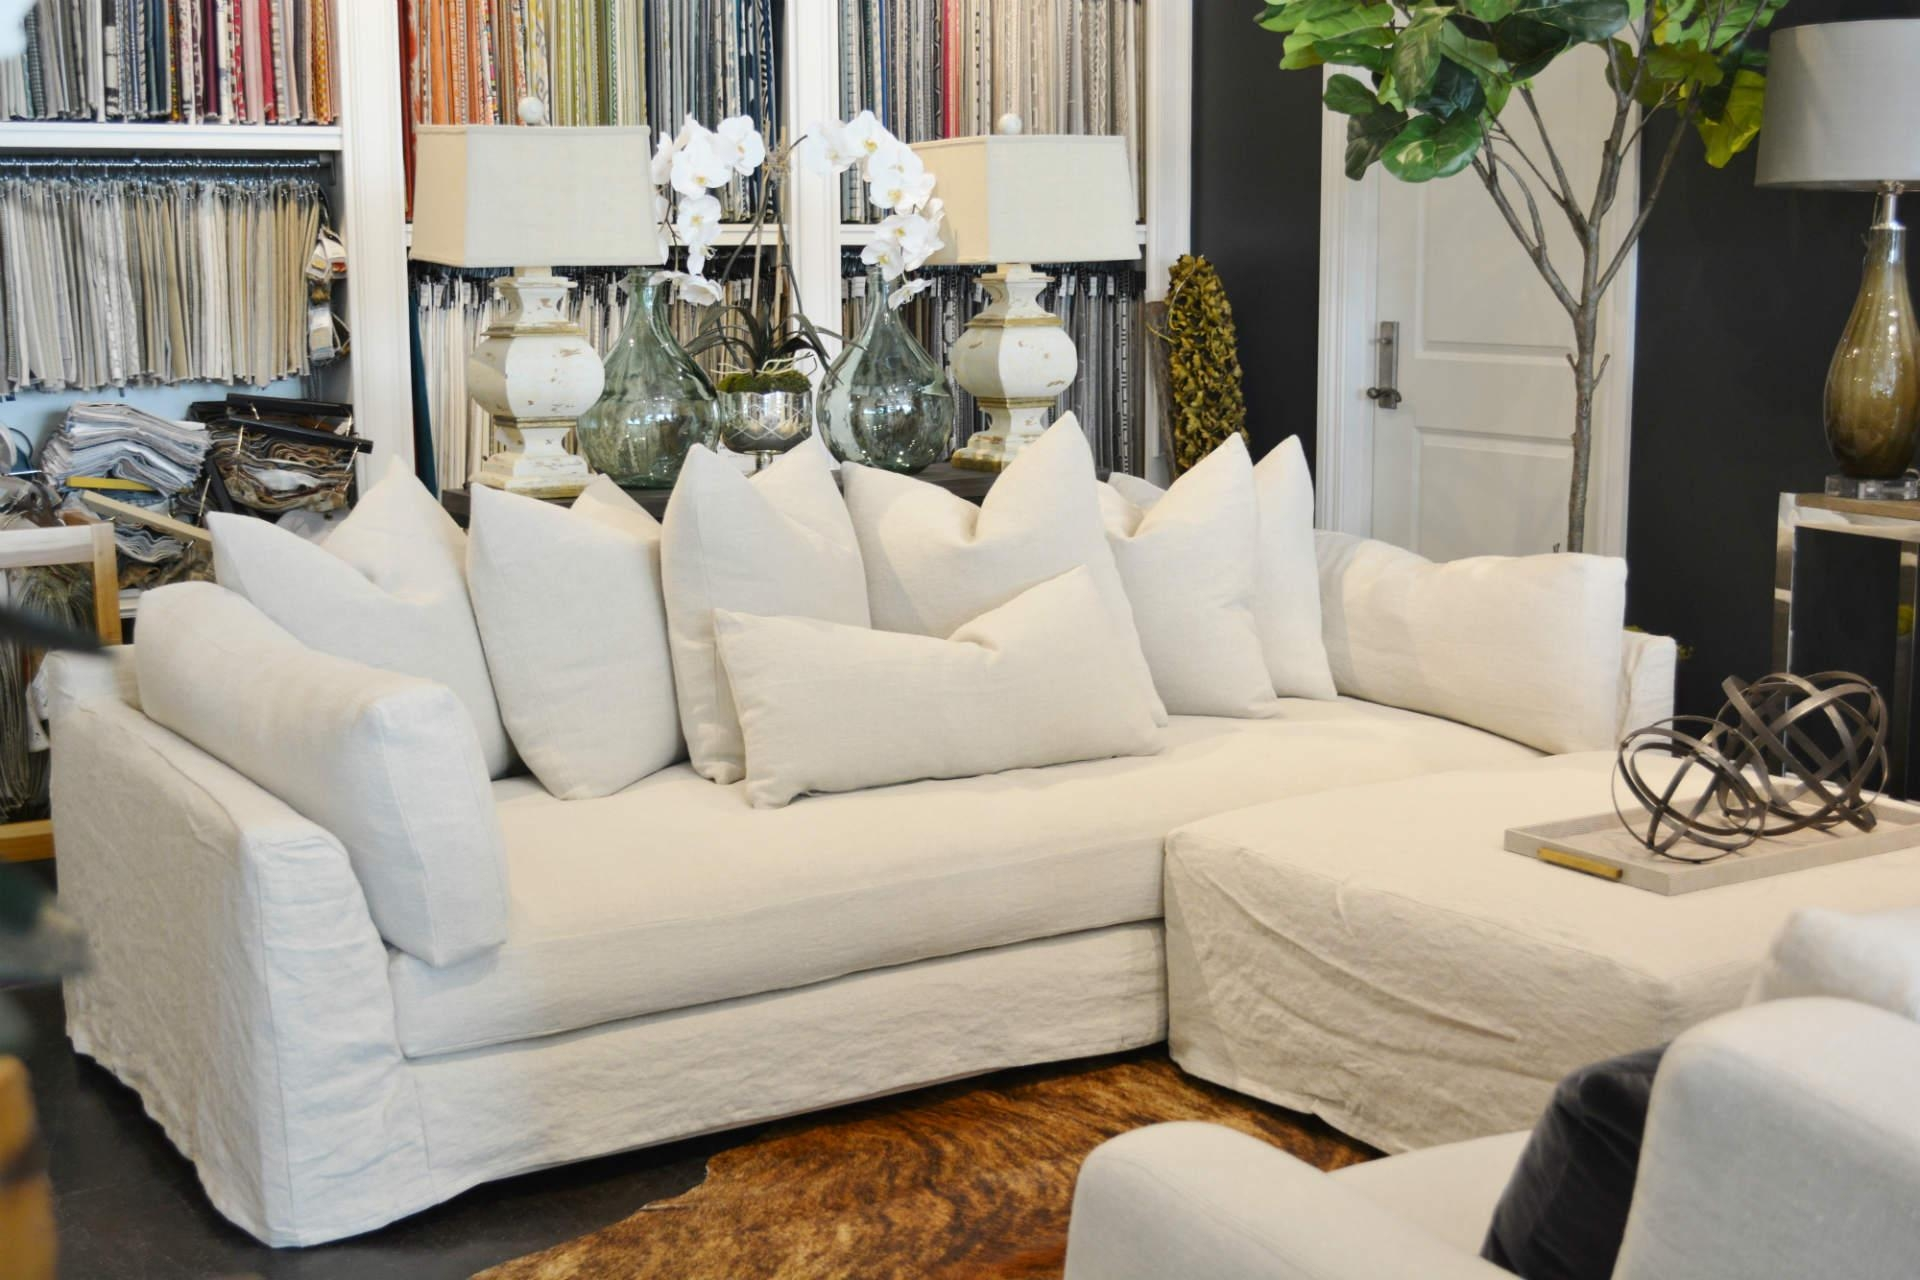 What's New Wednesday: Private Label Newport Collection – Heather Throughout Newport Sofas (View 5 of 20)